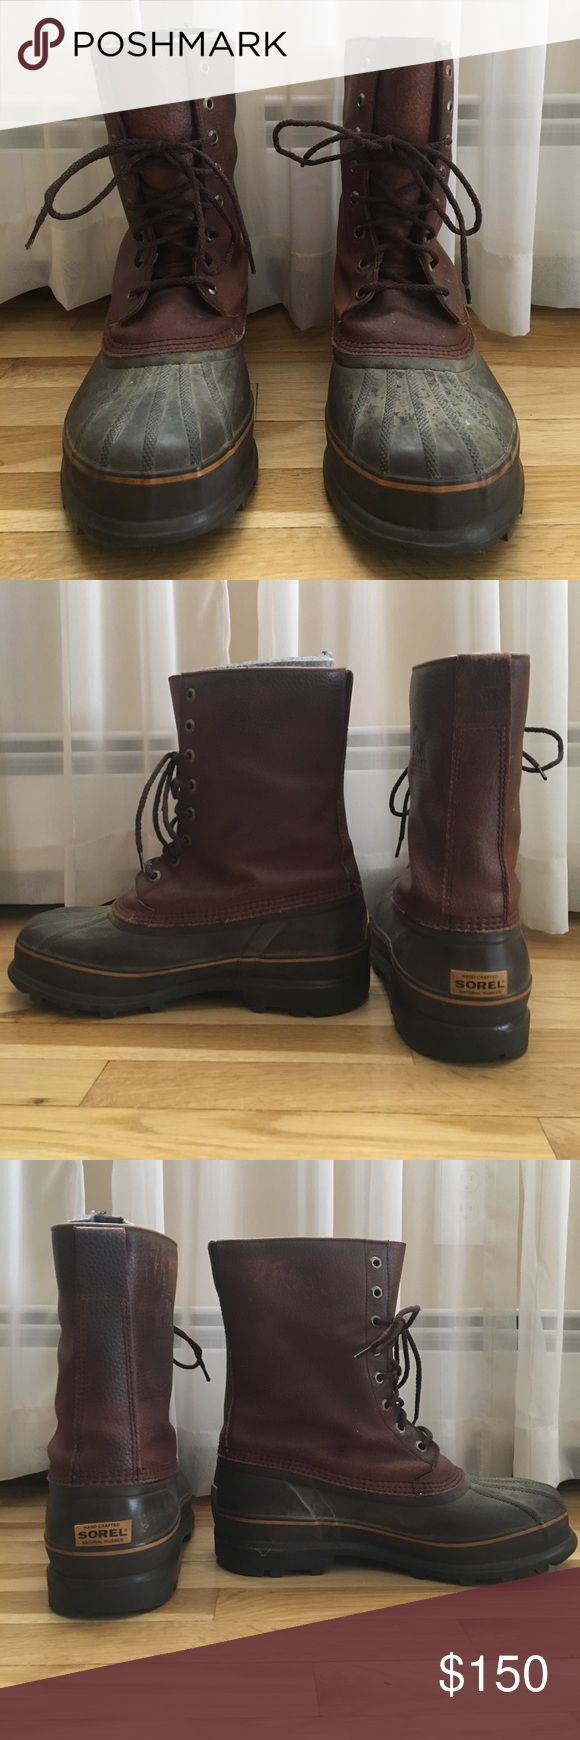 Sorel Men's Boots Sorel mens boots, used only a handful of times. Size 10 and has an interior removeable boot for extra warmth. A bit worn at the top probably from salt or just normal wear and tear. Sorel Shoes Boots